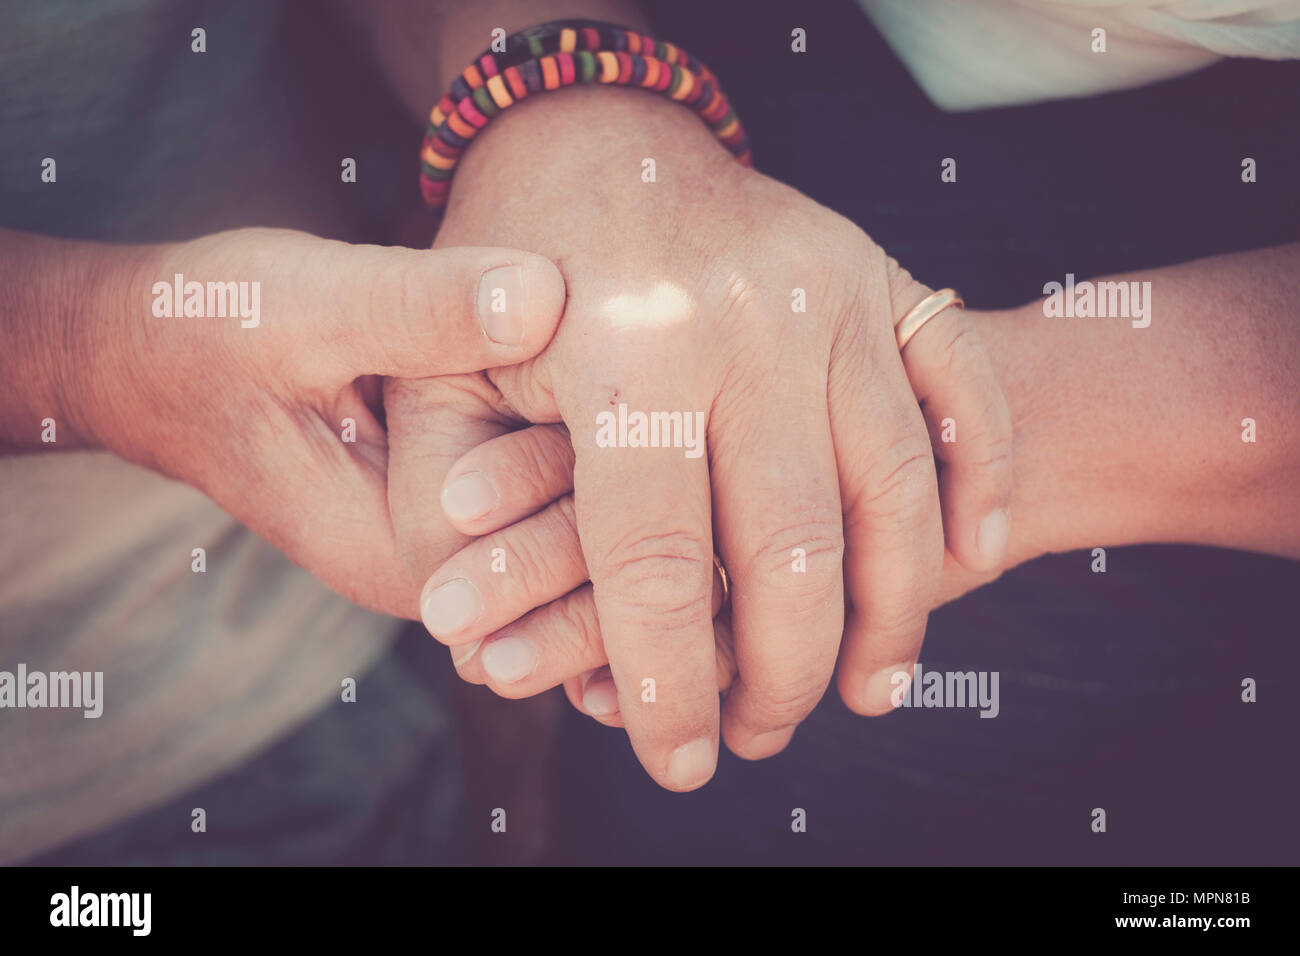 always tegether concept for a pair of elderly senior hands touching and staying together. Love moment for a life together Stock Photo